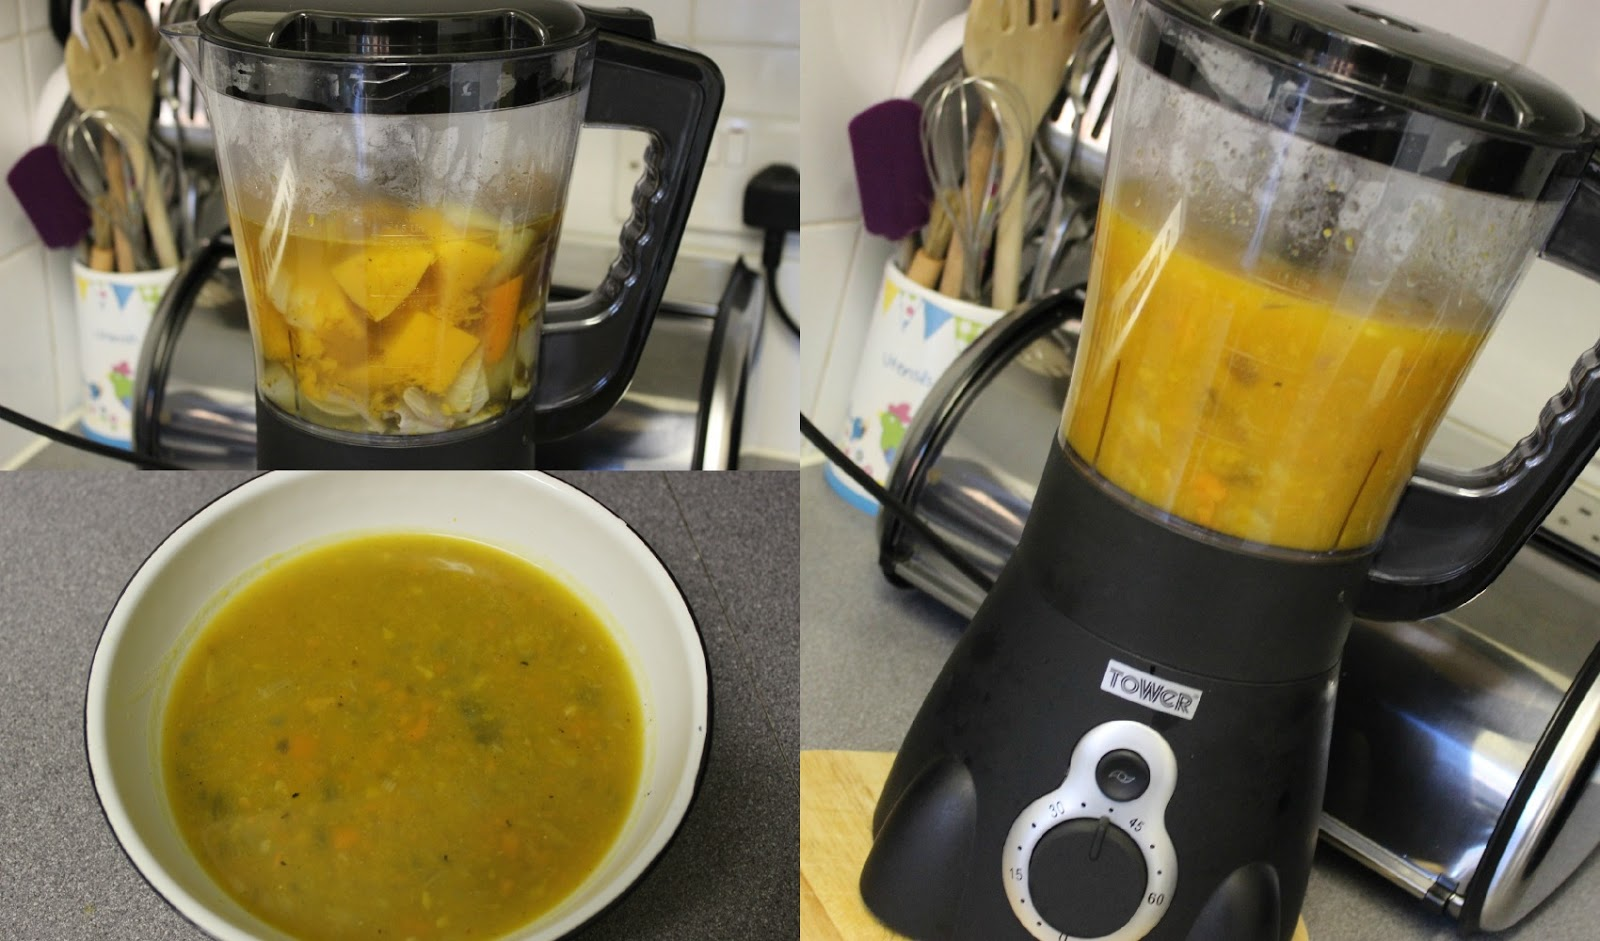 A picture of the Tower Soup Maker